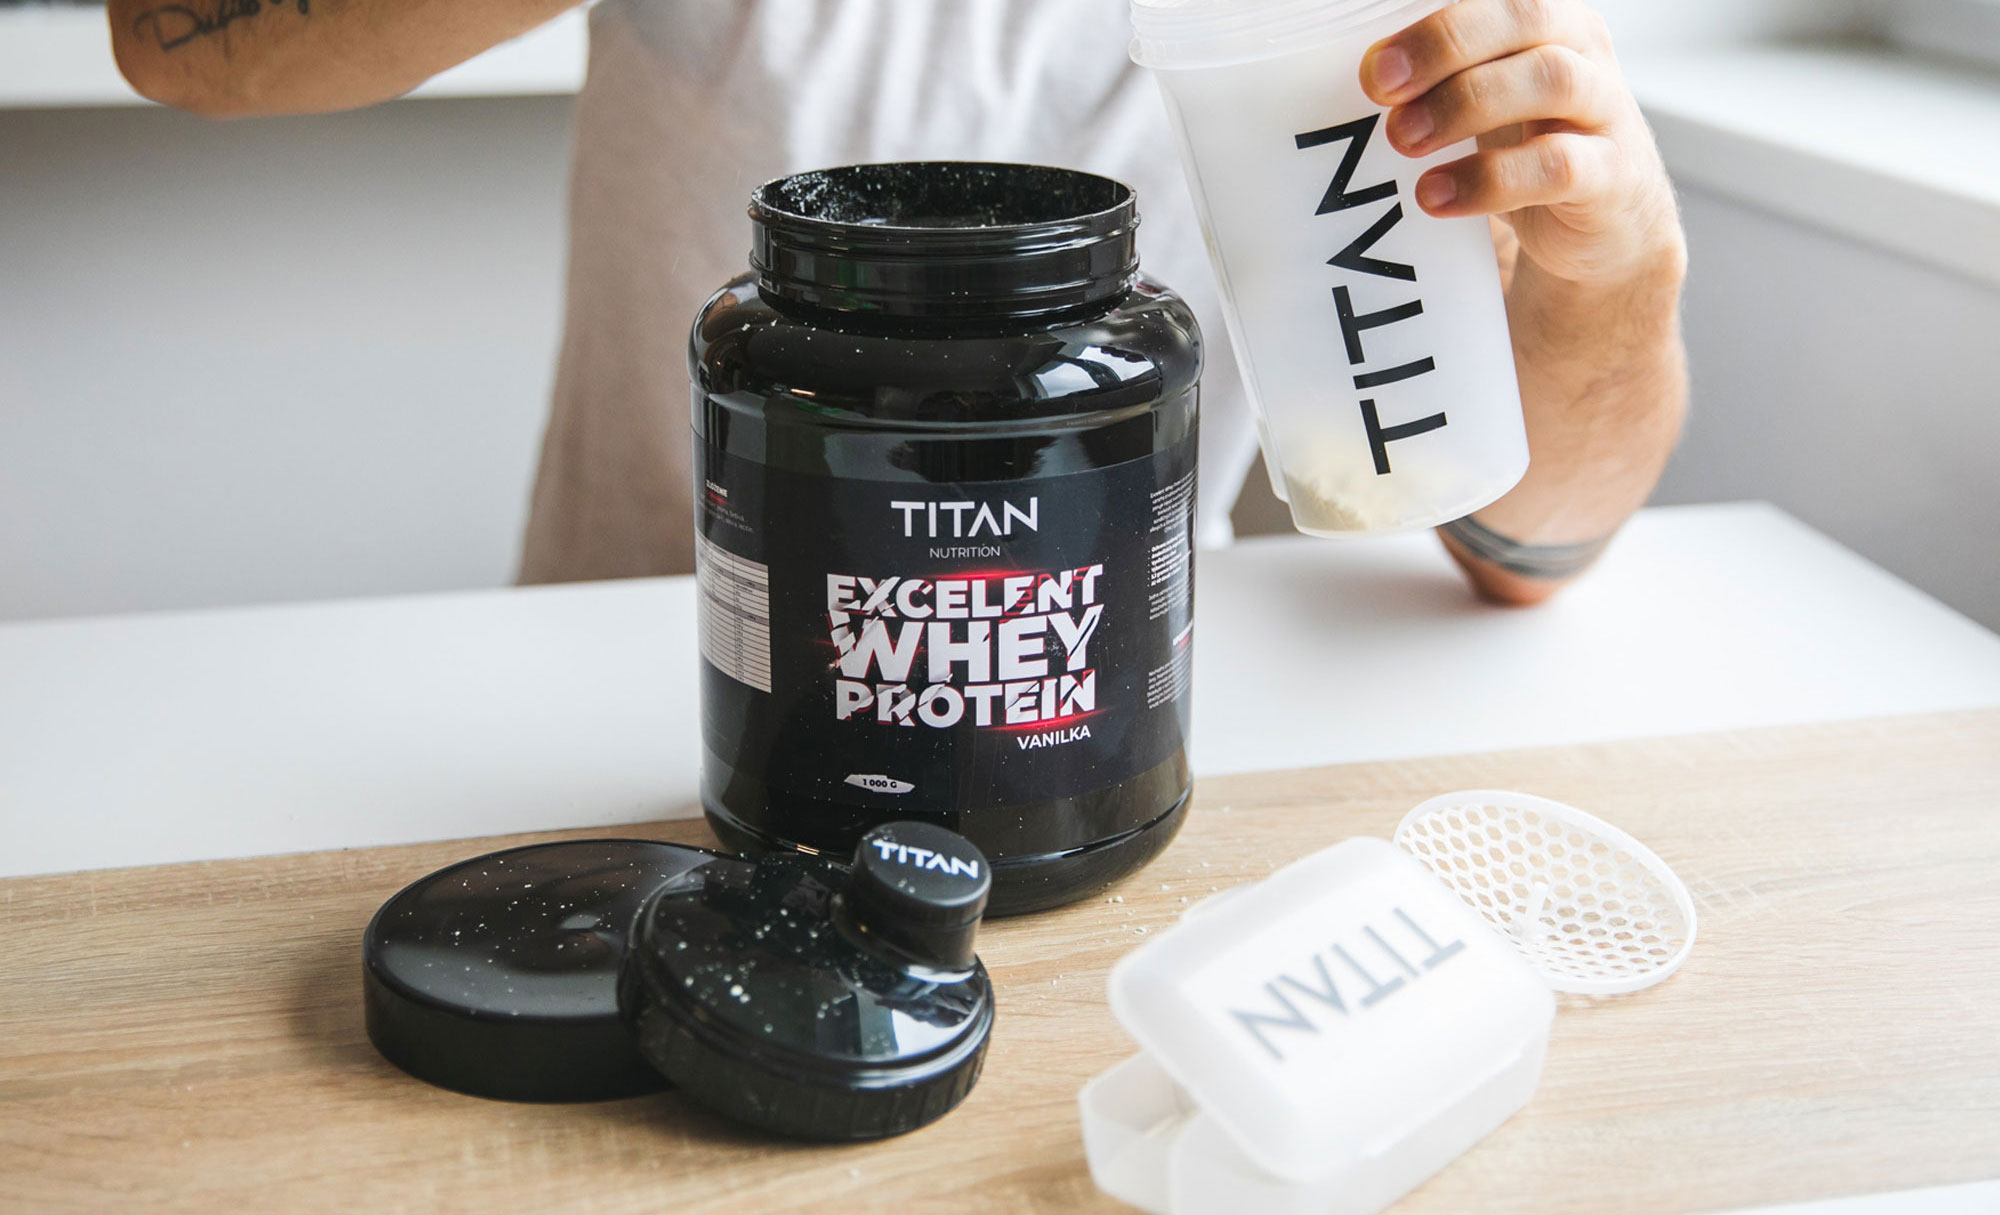 excelent whey protein